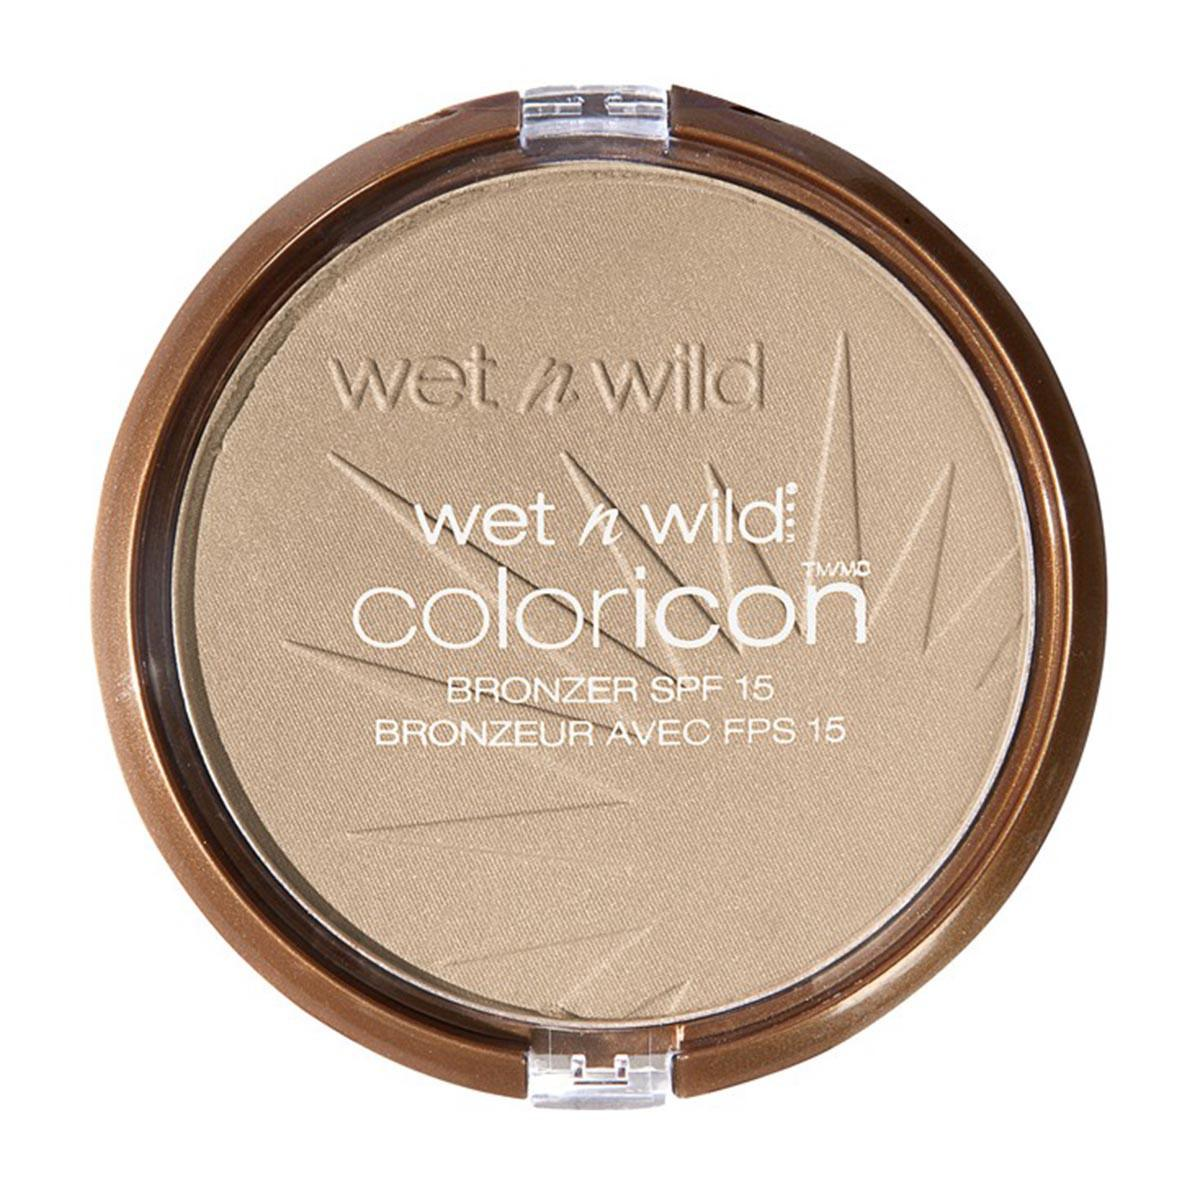 Wet n wild Coloricon Bronzer Spf15 Reserve Your Cabana